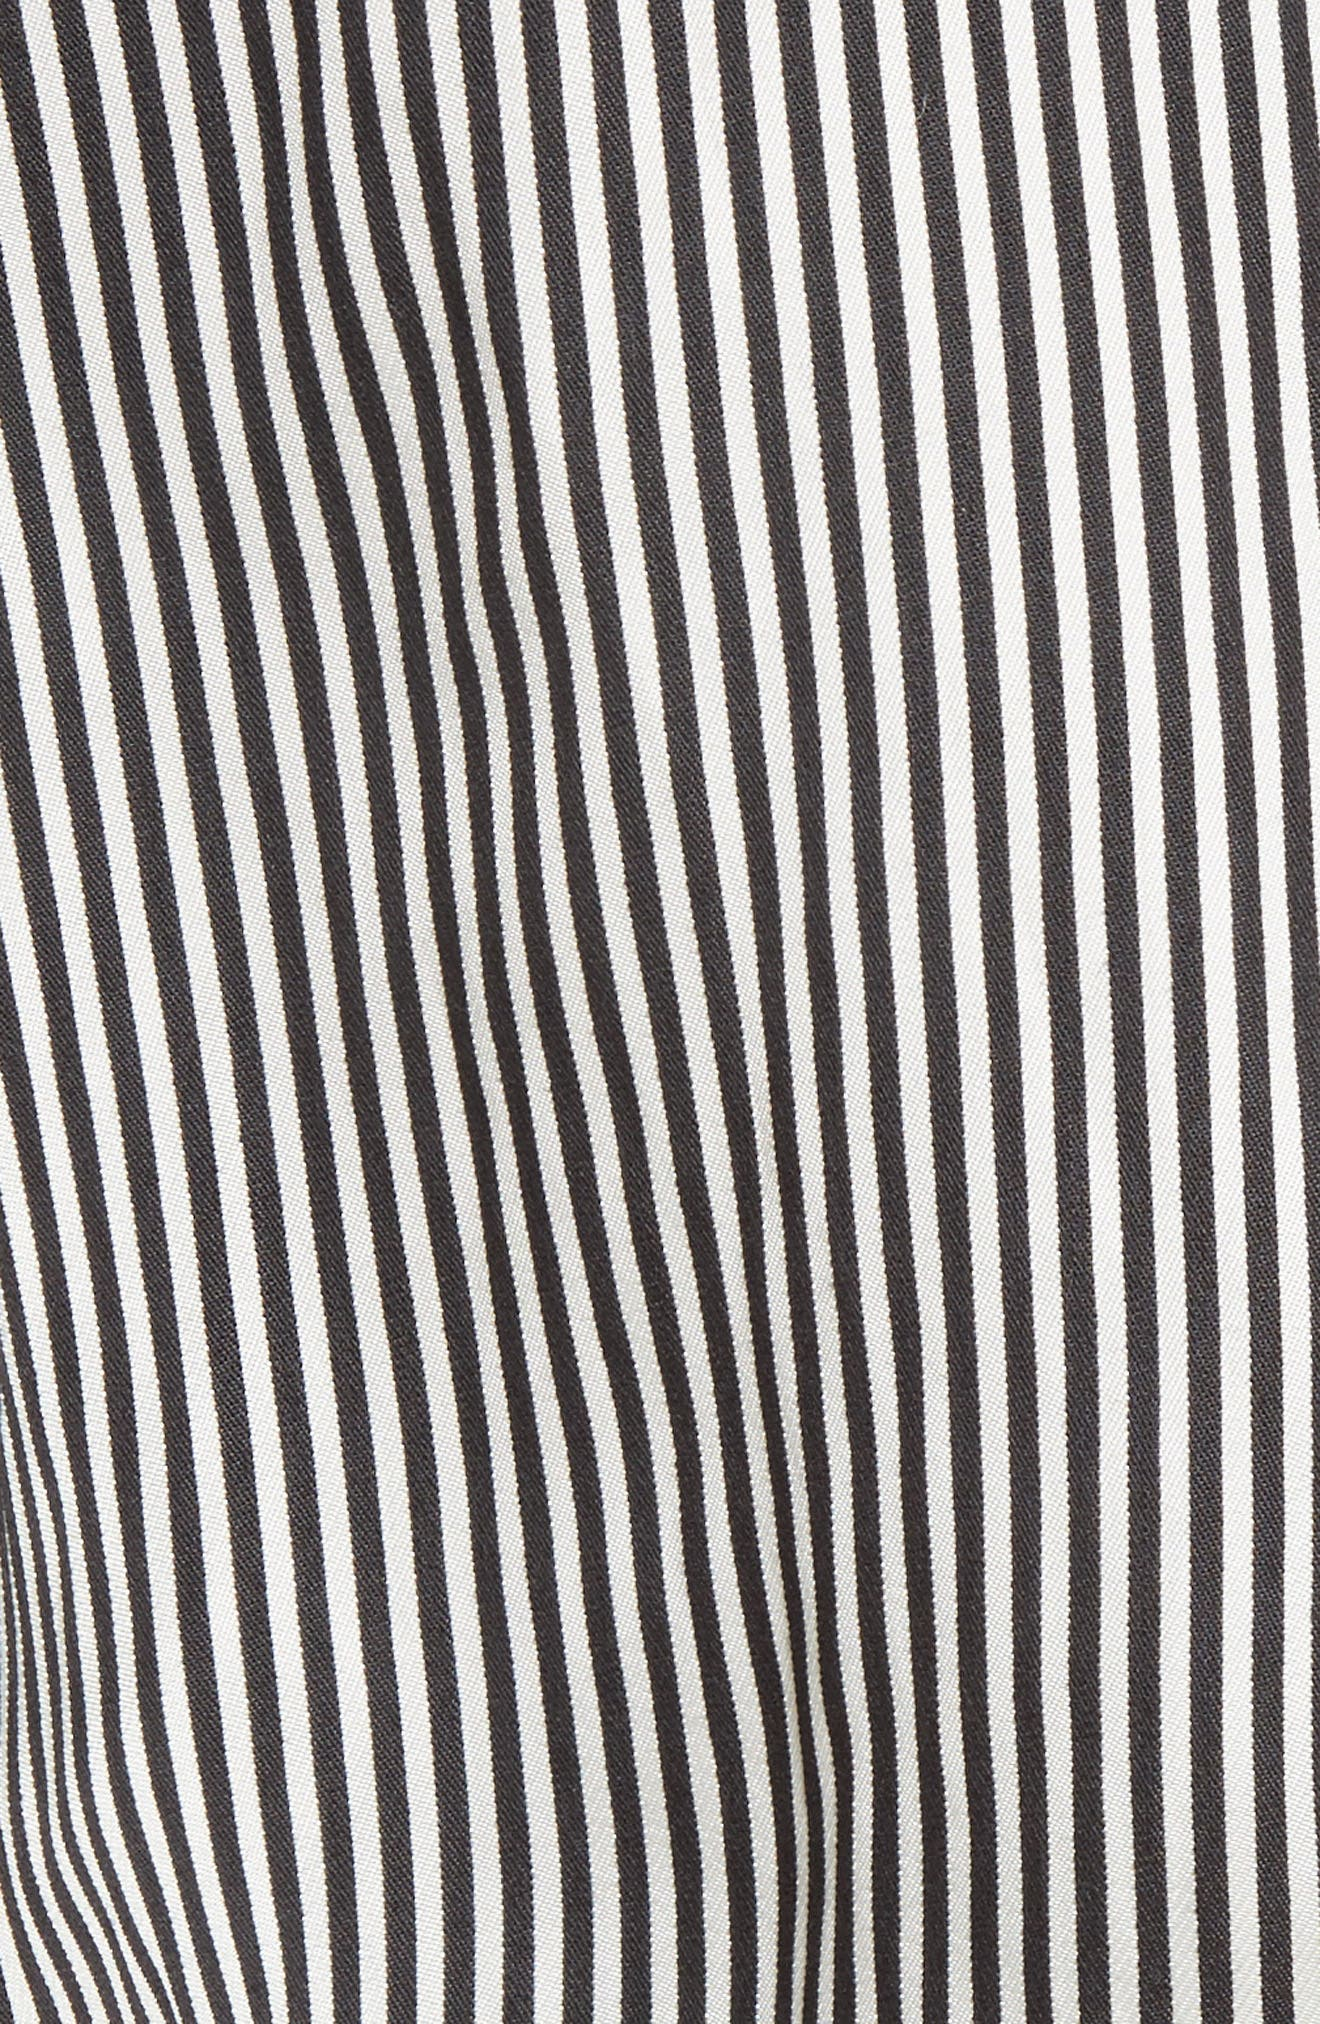 Asymmetrical Pinstripe Shirt,                             Alternate thumbnail 5, color,                             001